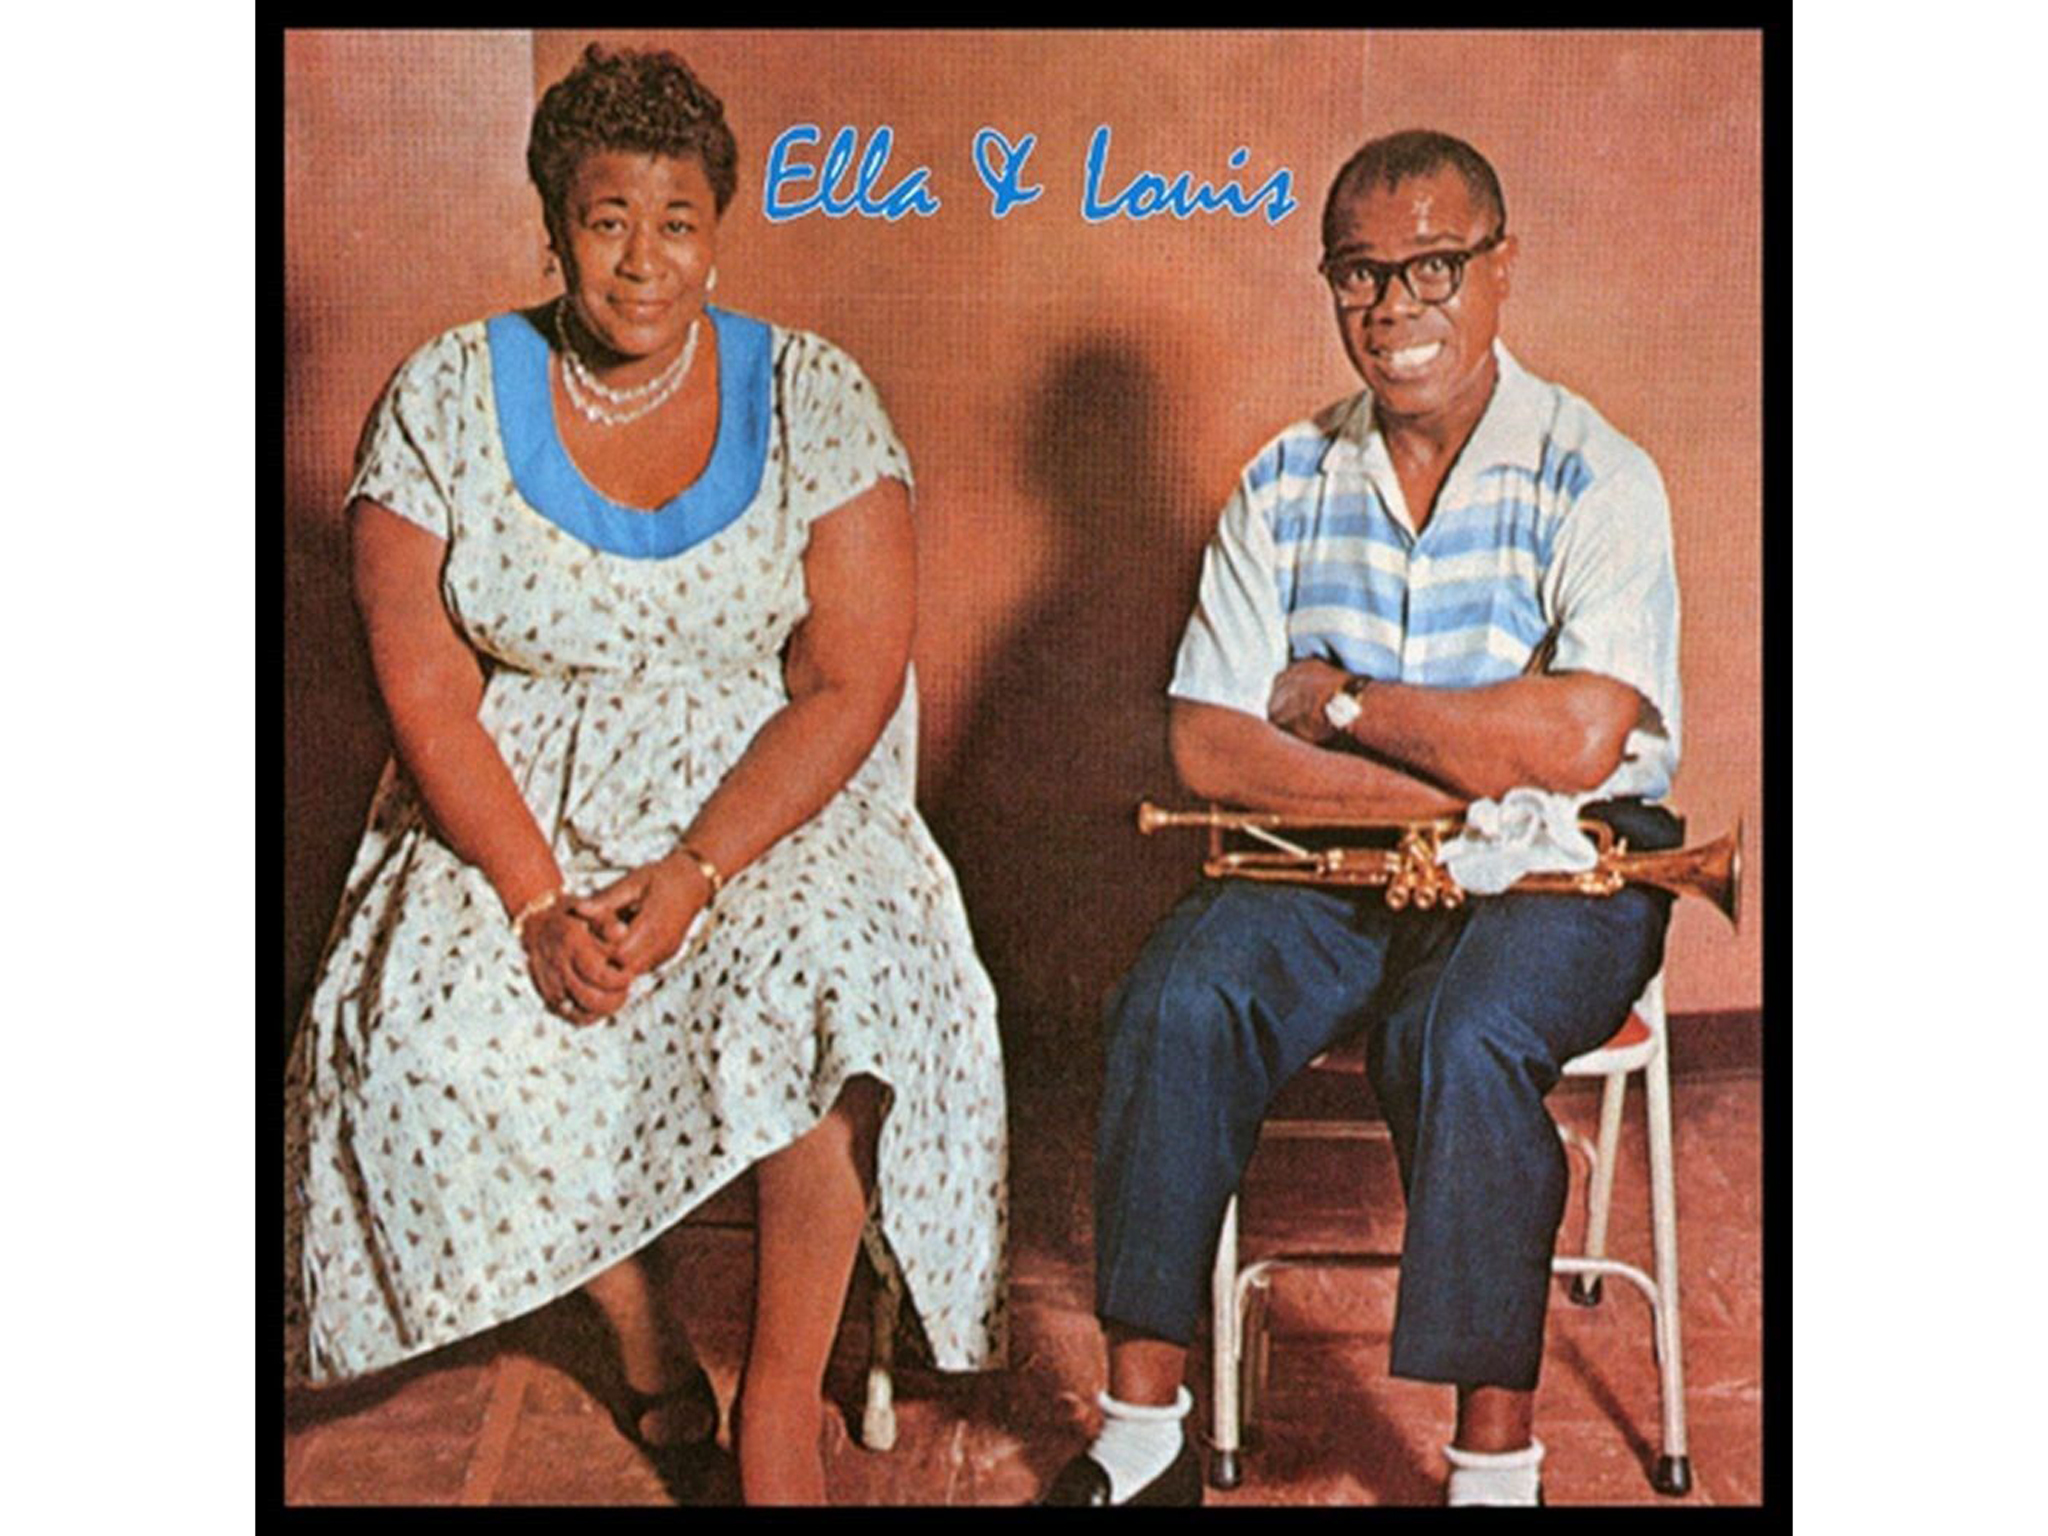 Ella and Louis album by Ella Fitzgerald and Louis Armstrong